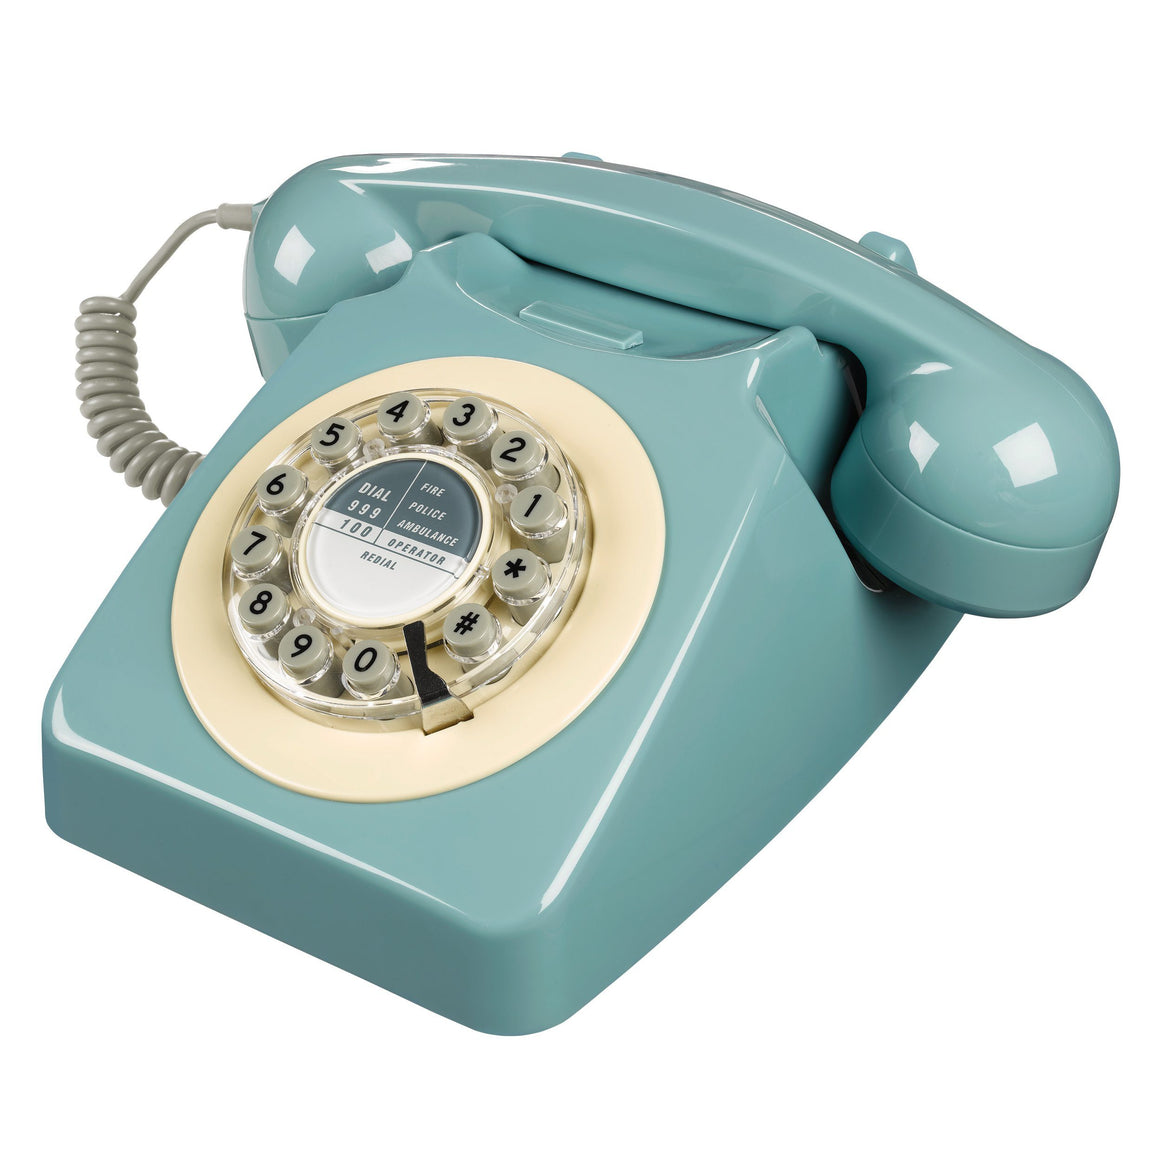 French Blue 746 Telephone Classic 1960's Design Telephone Bouchic